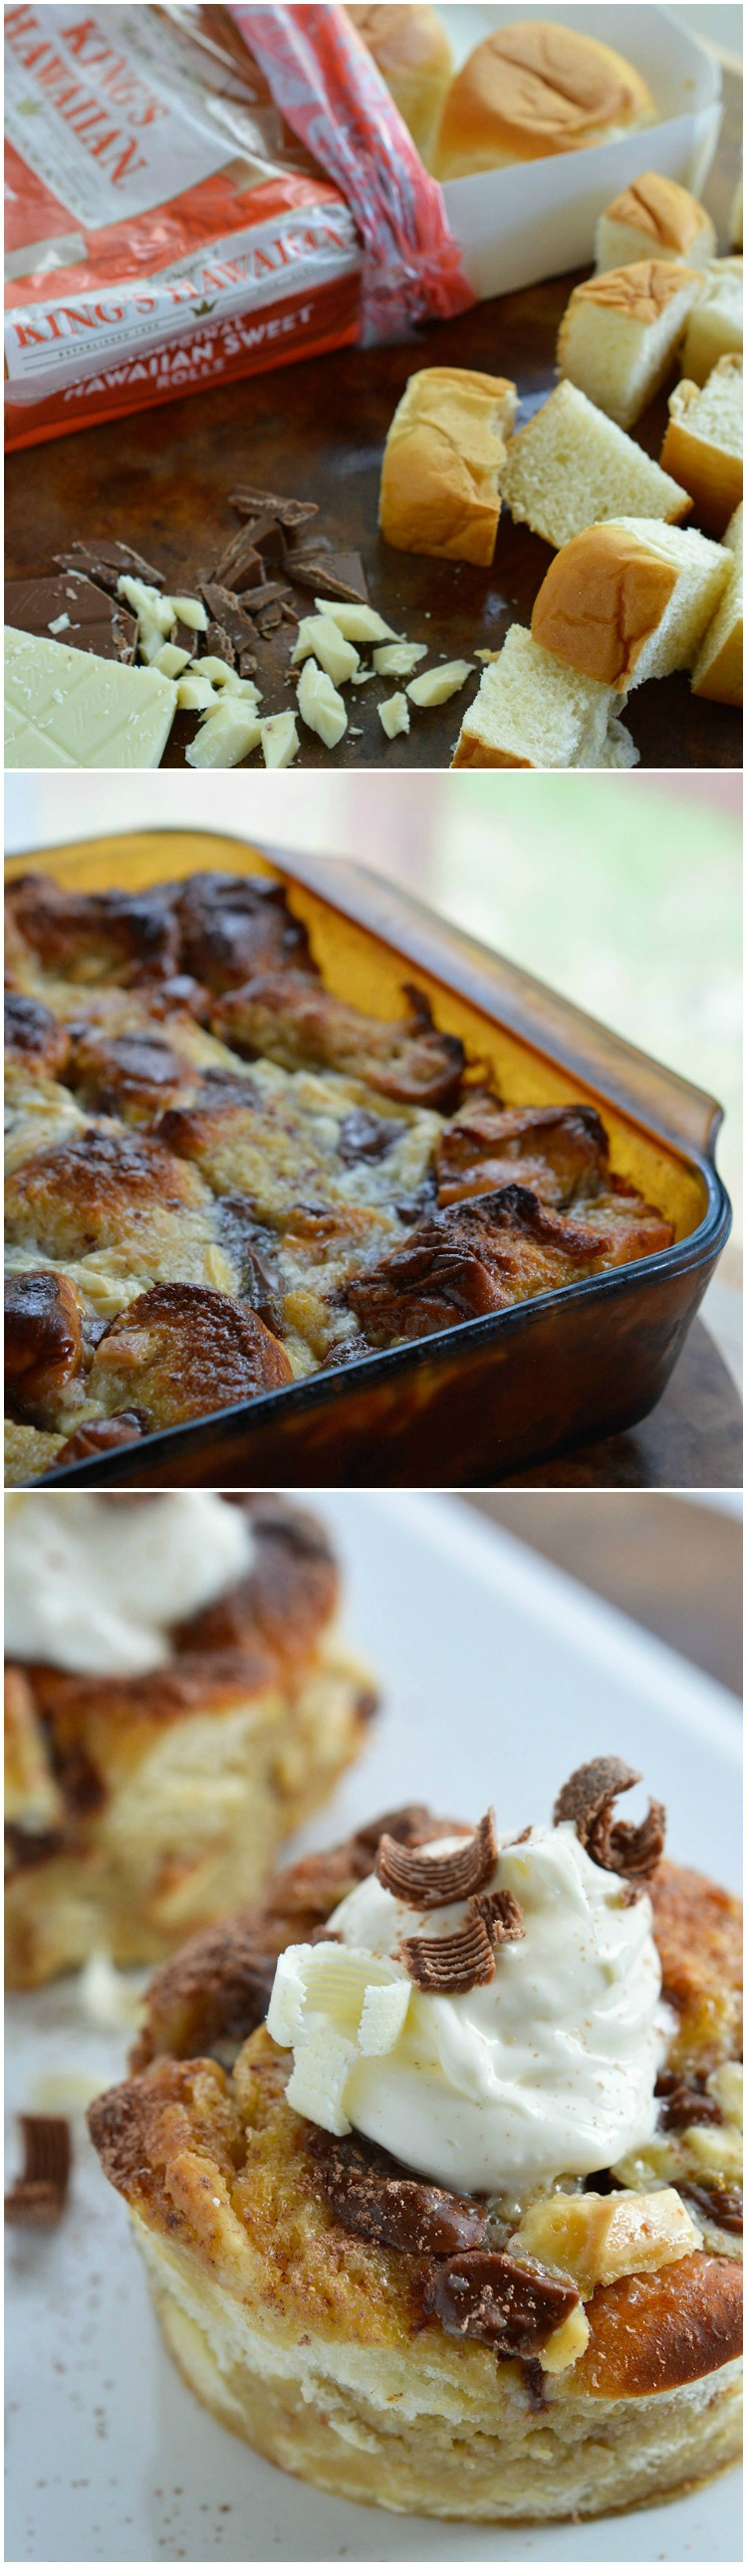 Tiramisu White Chocolate Bread Pudding - WonkyWonderful